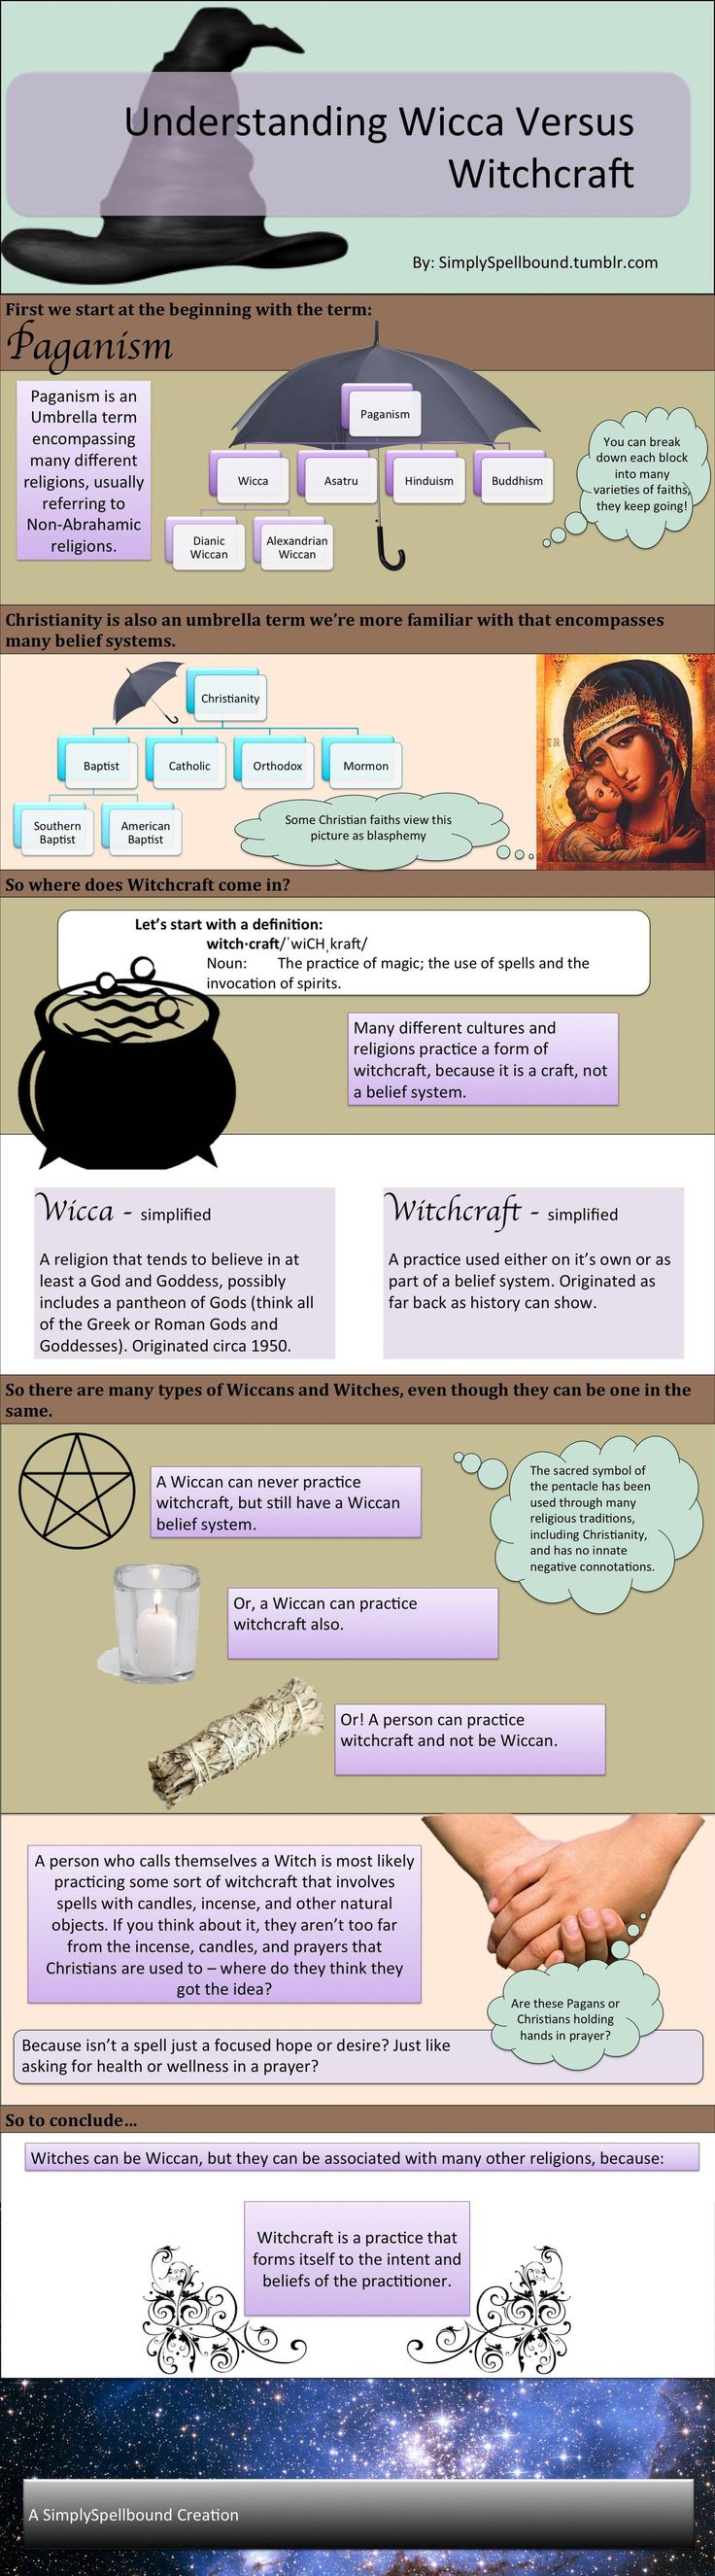 Understanding paganism in religion: Differentiating Wicca